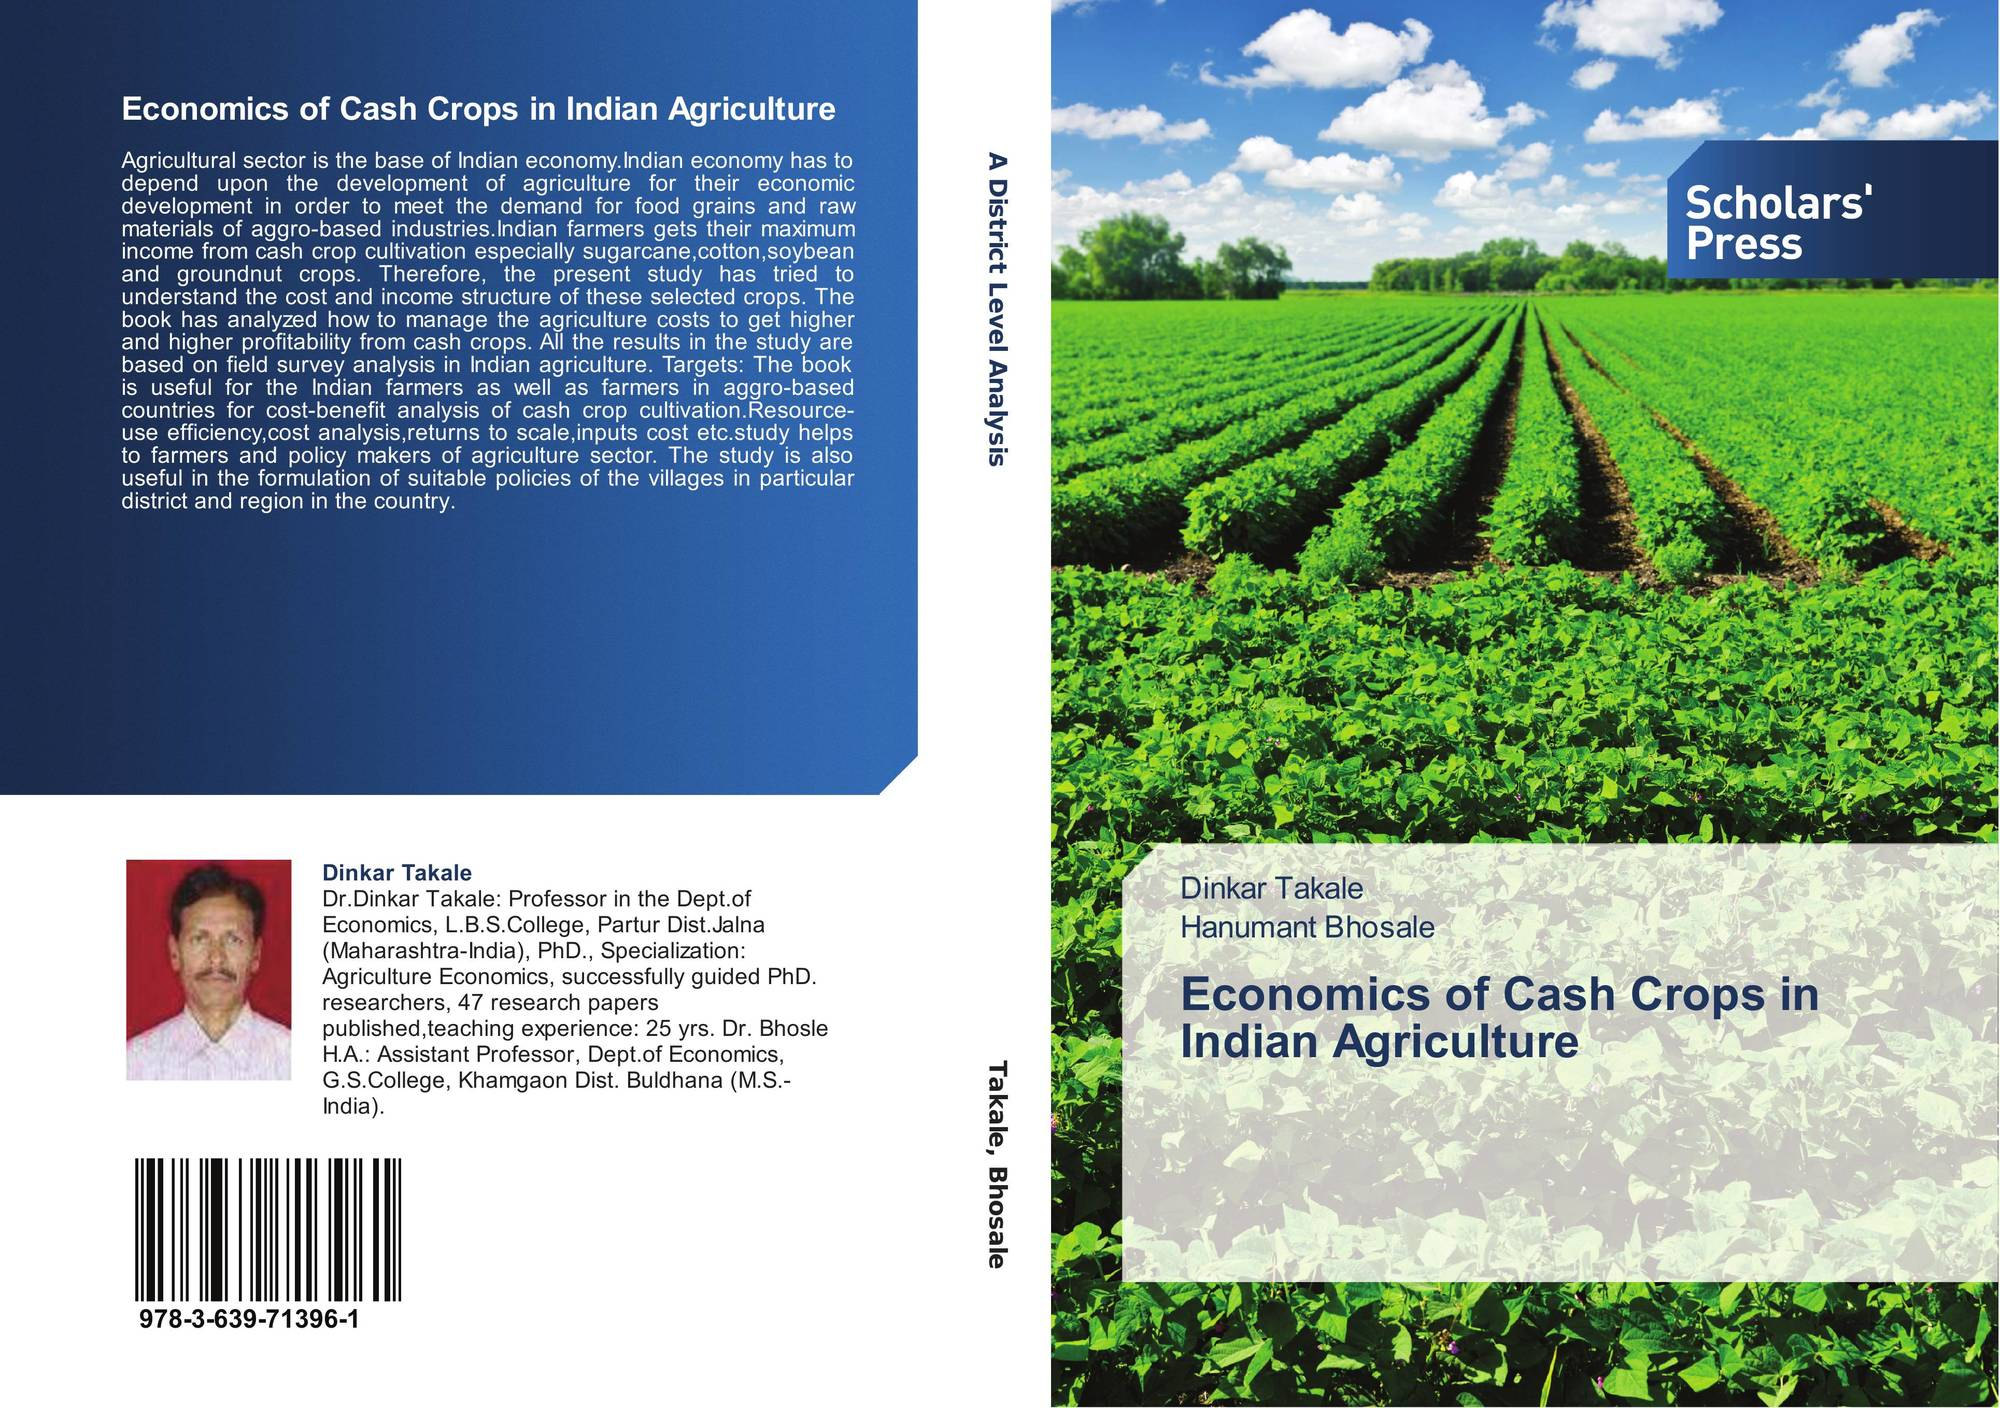 research papers on agriculture finance in india